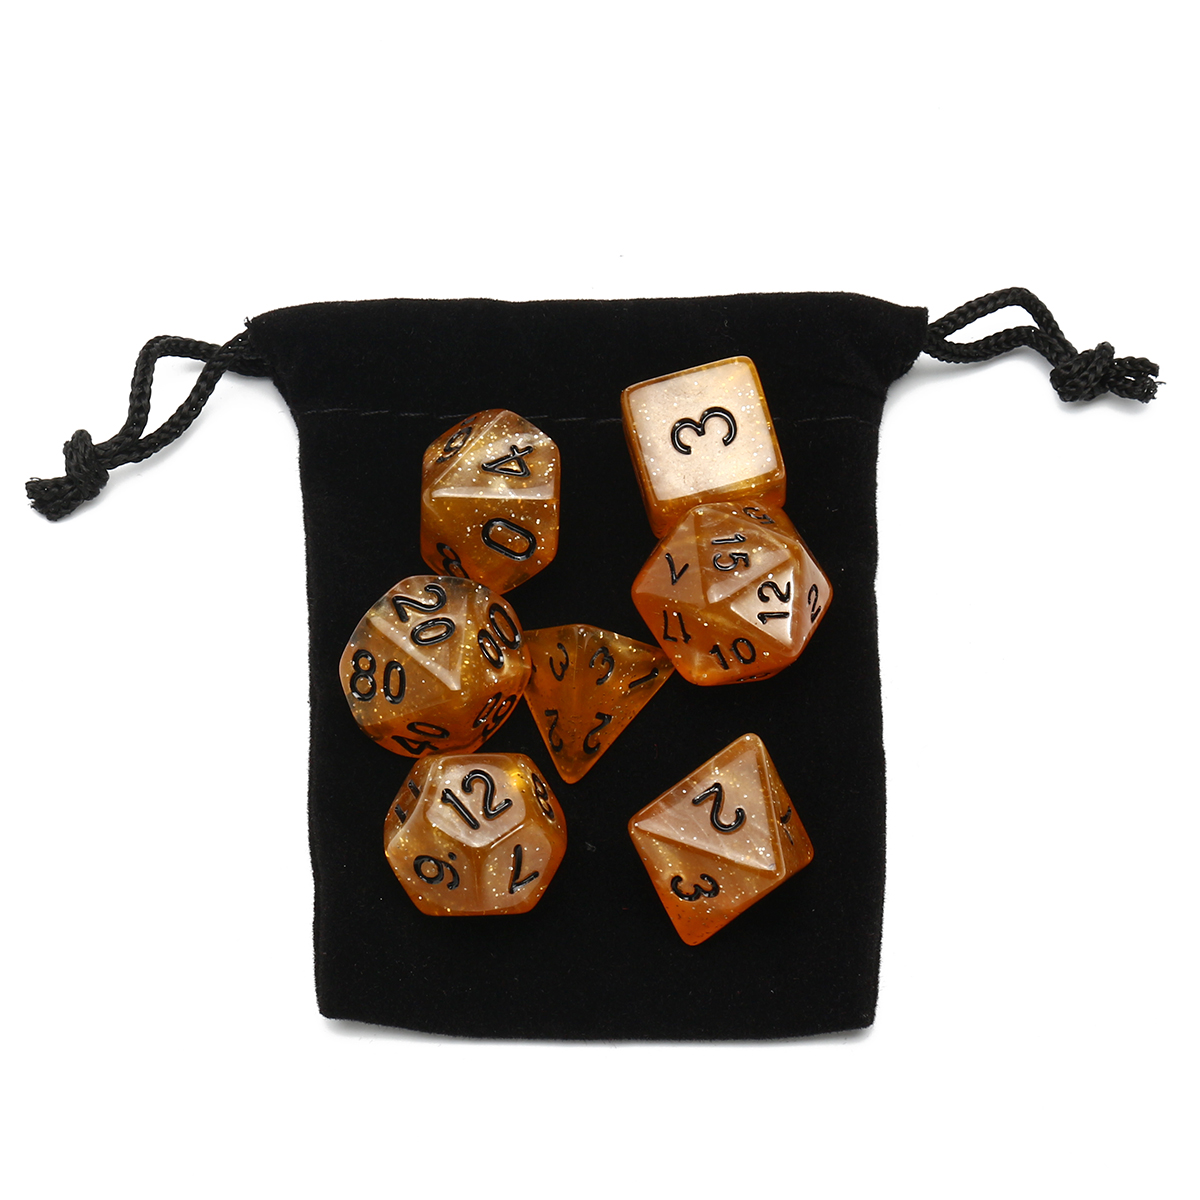 7 Piece Polyhedral Dice Set Multisided Dice With Dice Bag RPG Role Playing Games Dices Gadget